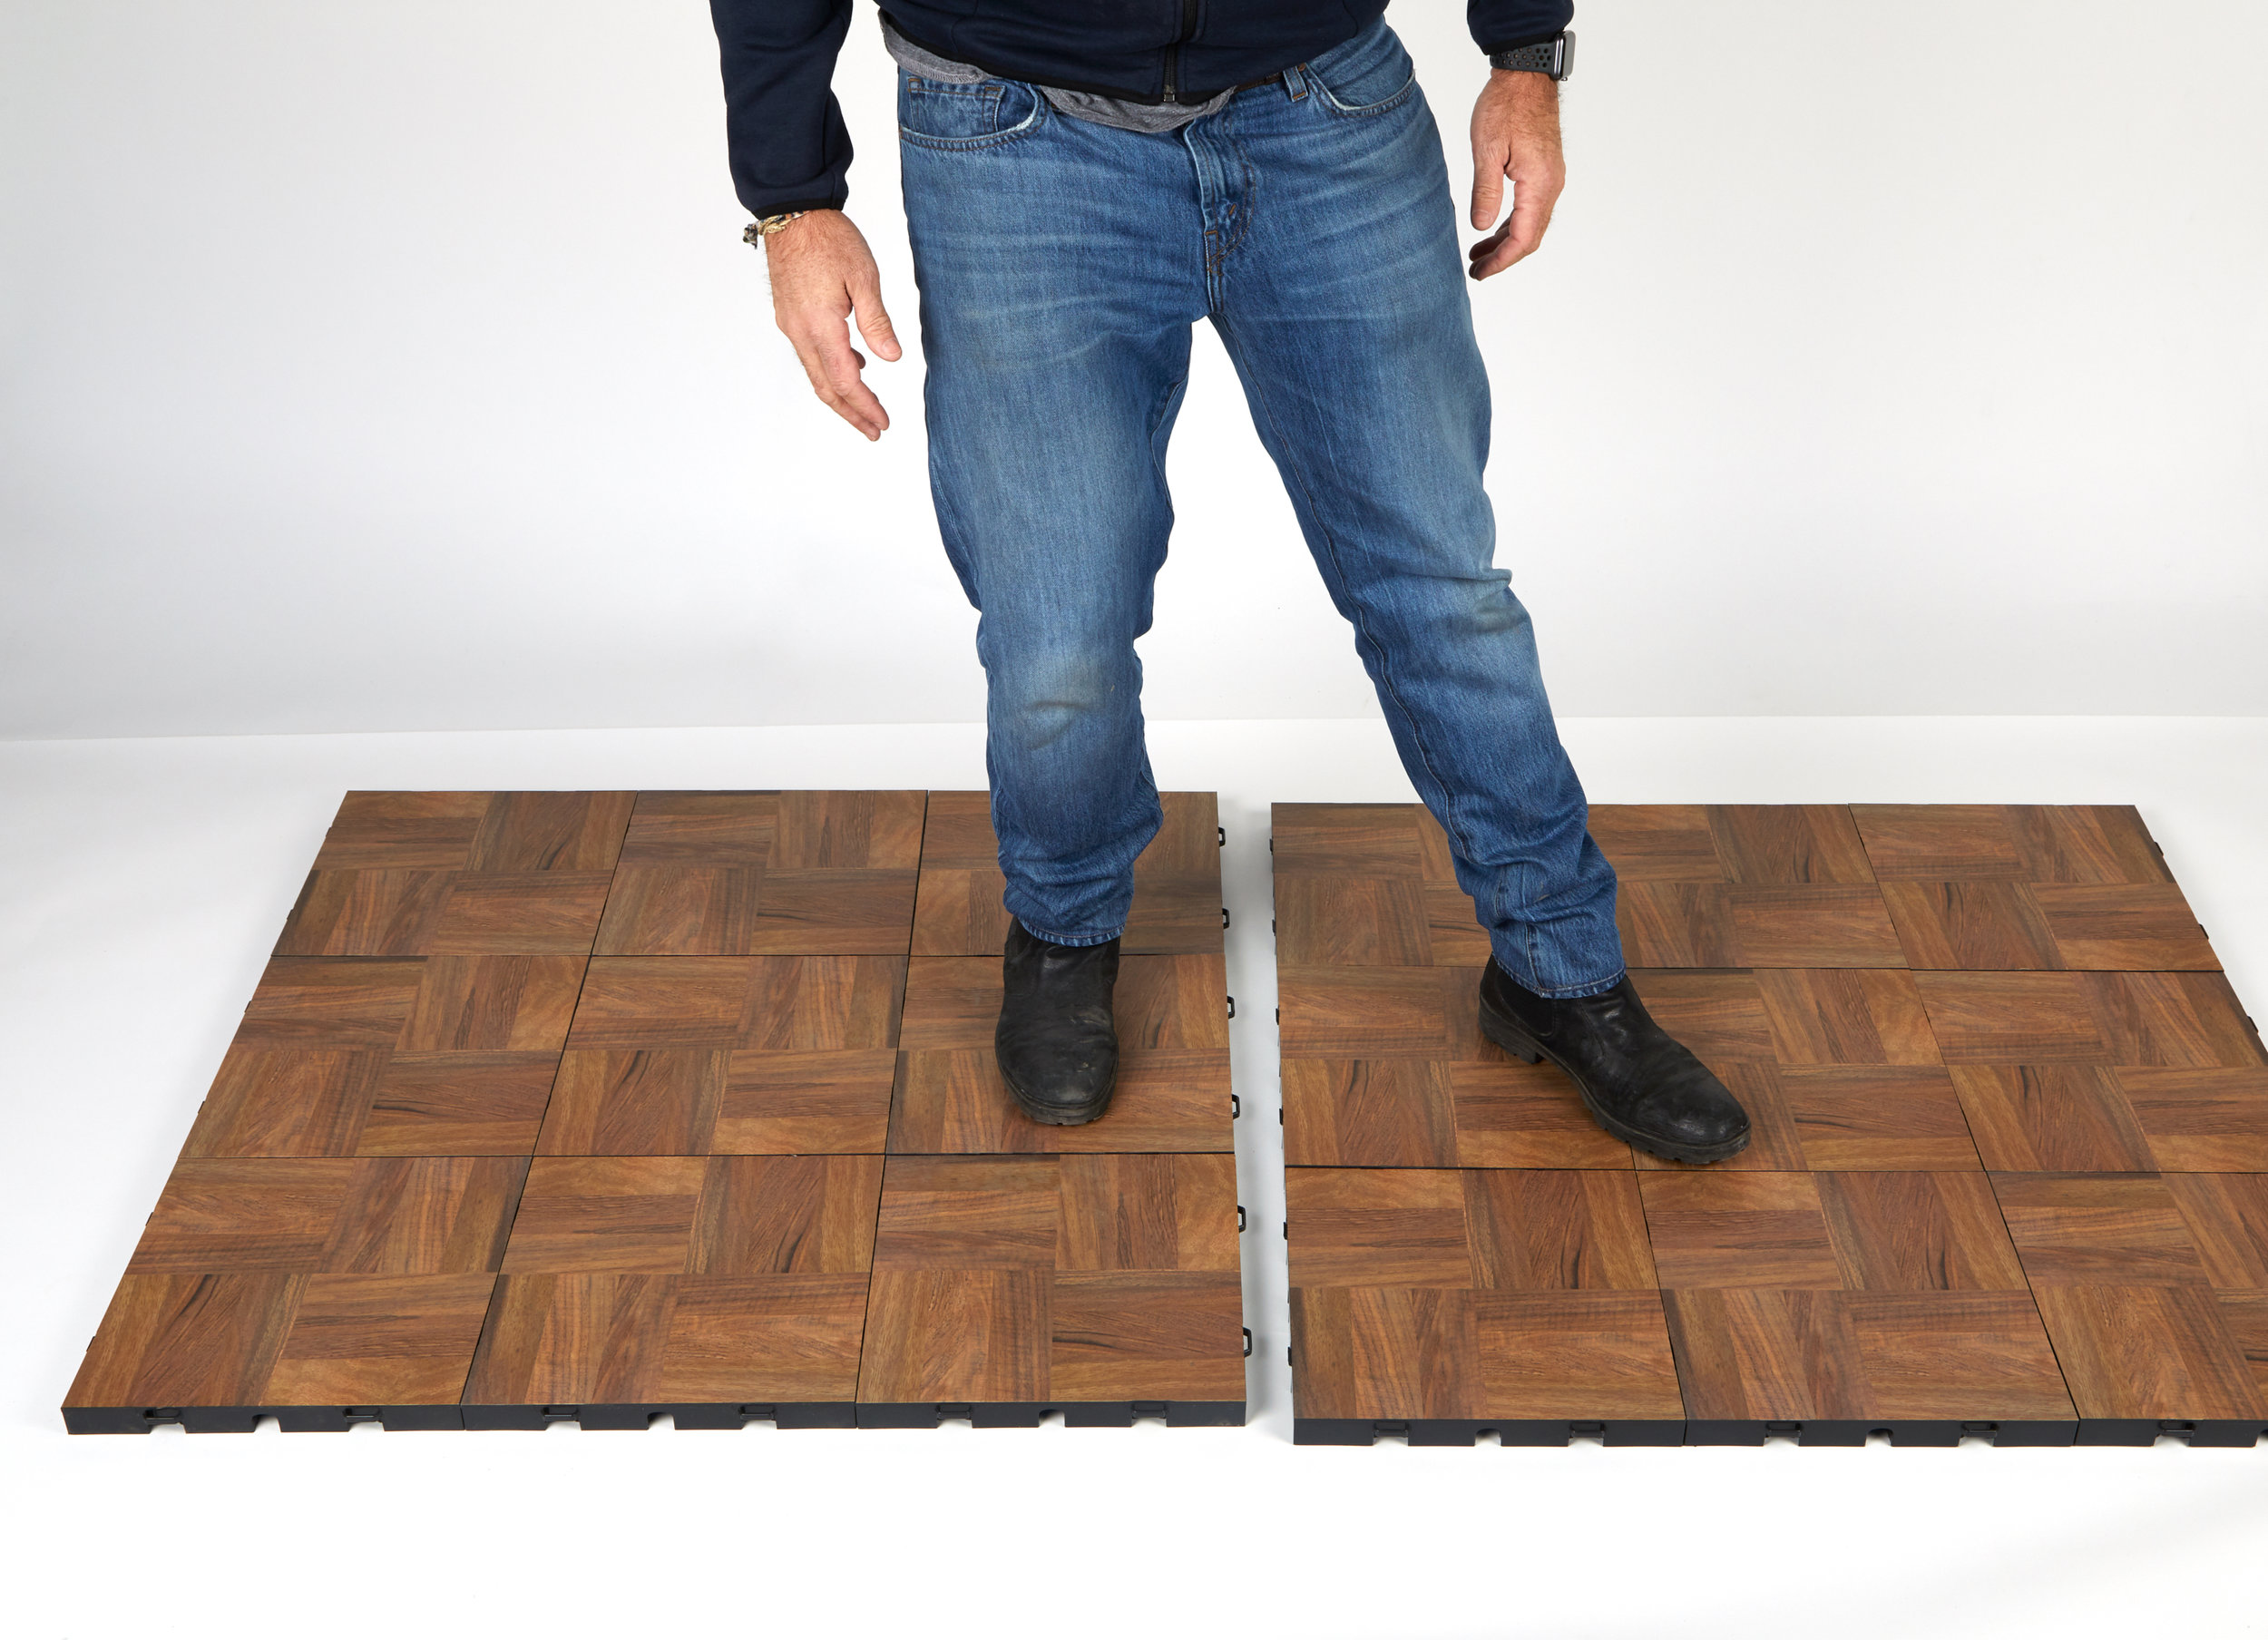 STEP 3:  Use your foot to nudge flooring over to the first panel, such that the male clips ride onto the female loops. Sections are designed to self-align when nudged together.